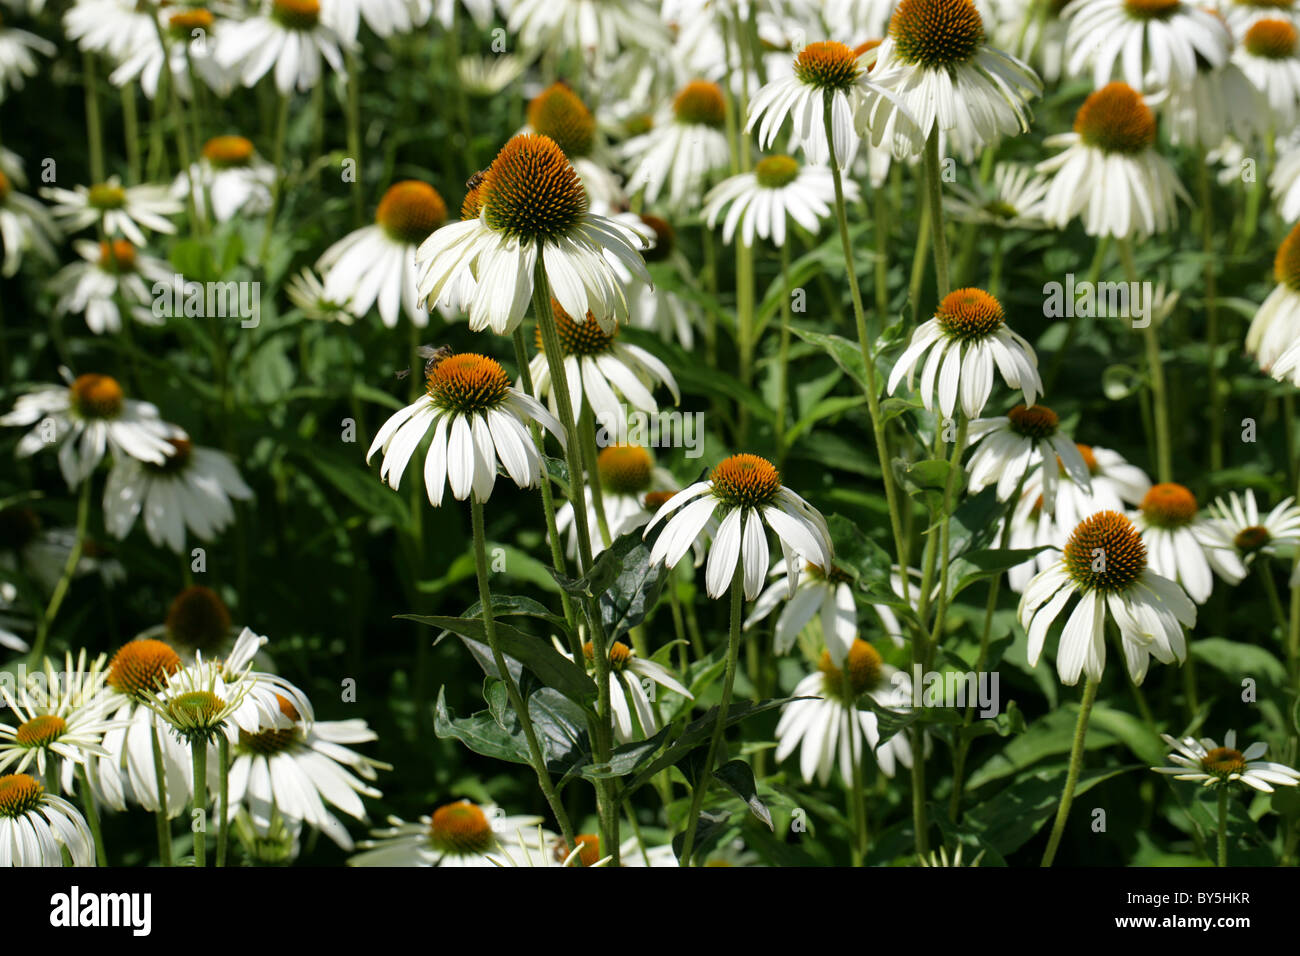 Purple Coneflower or Purple Echinacea, Rudbeckia purpurea (Echinacea purpurea) 'White Swan', Asteraceae. - Stock Image